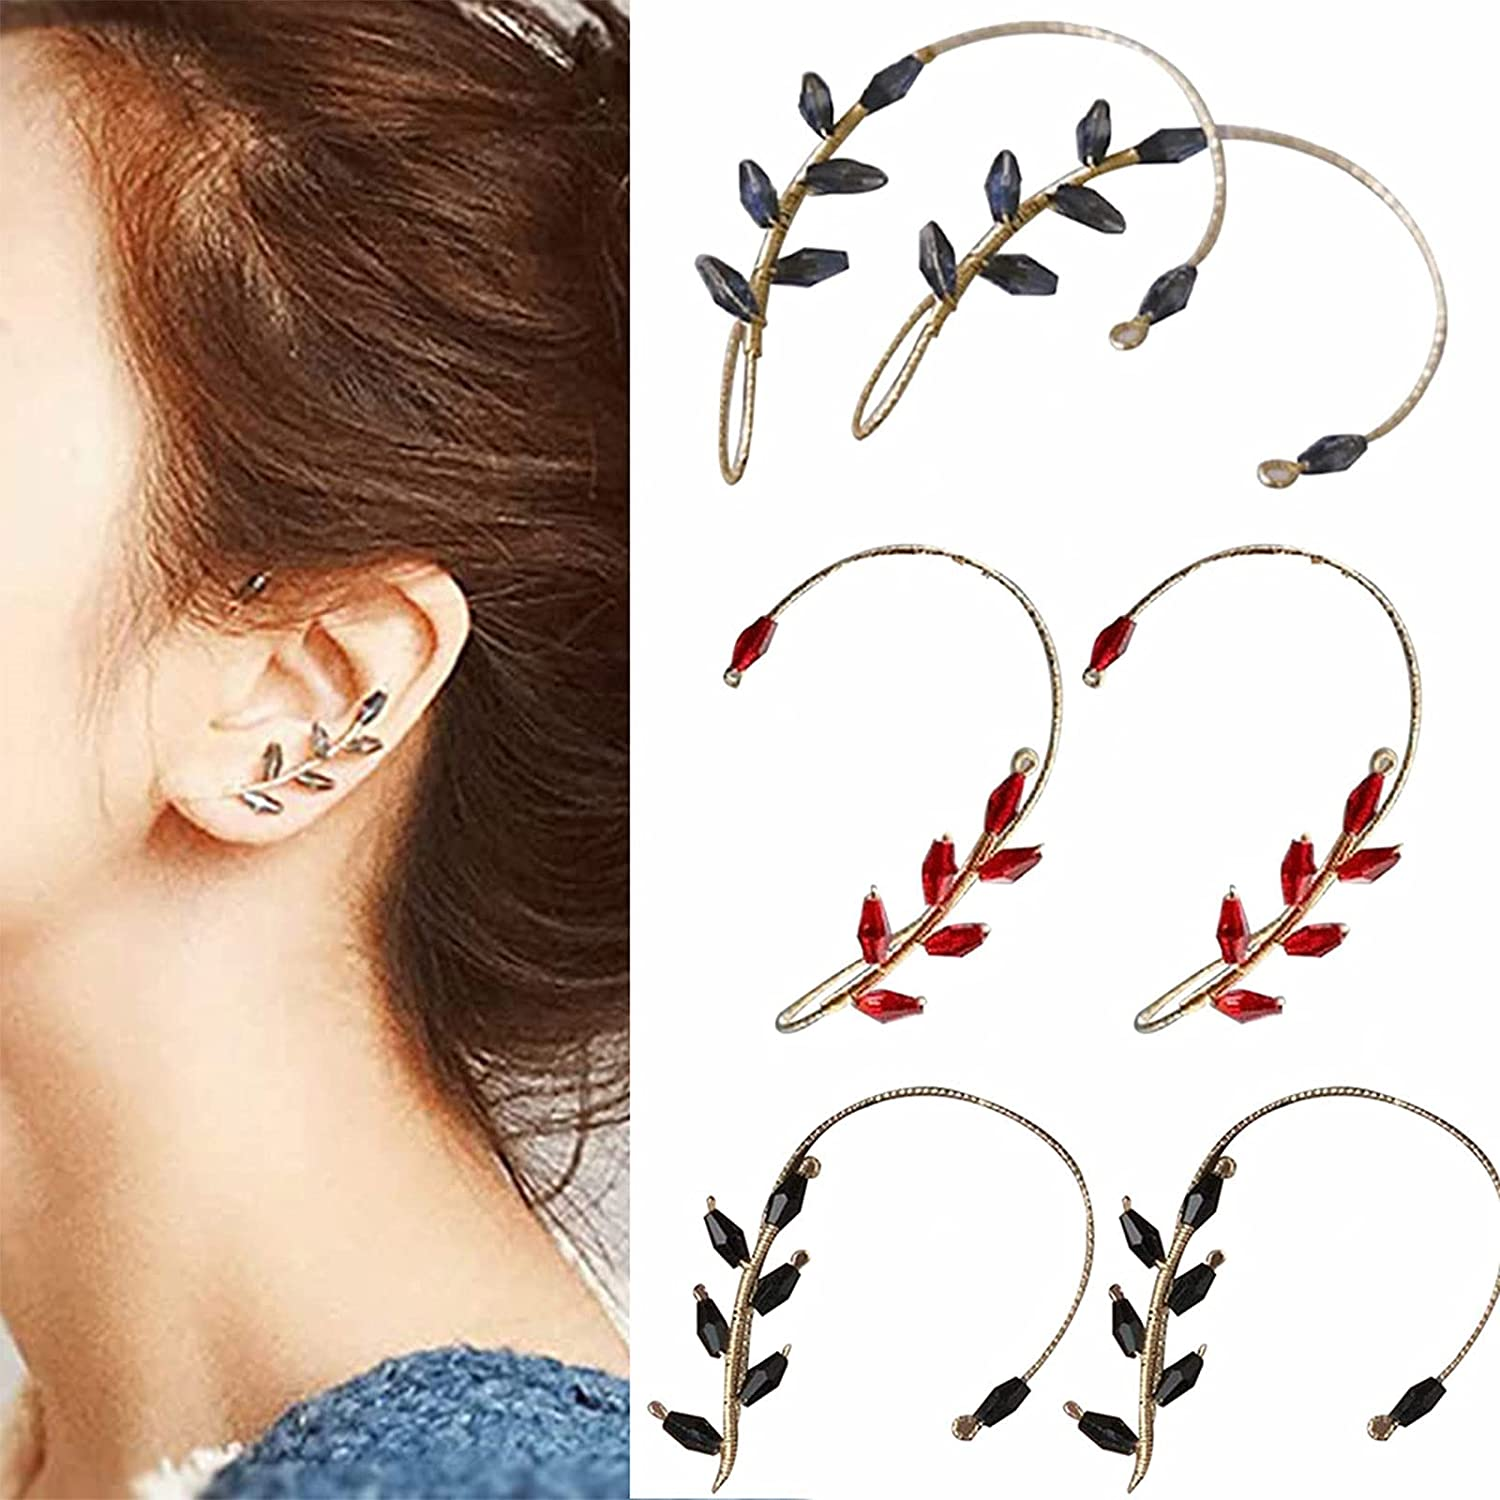 YAYANG Vintage Ear Cuff Earrings, No Piercing Beading Ear Hook, 2Pcs/1 Pair Ear Wrap Crawler Hook ?Earrings ?Wire Wrapping Beaded, Suitable for Women and Girls